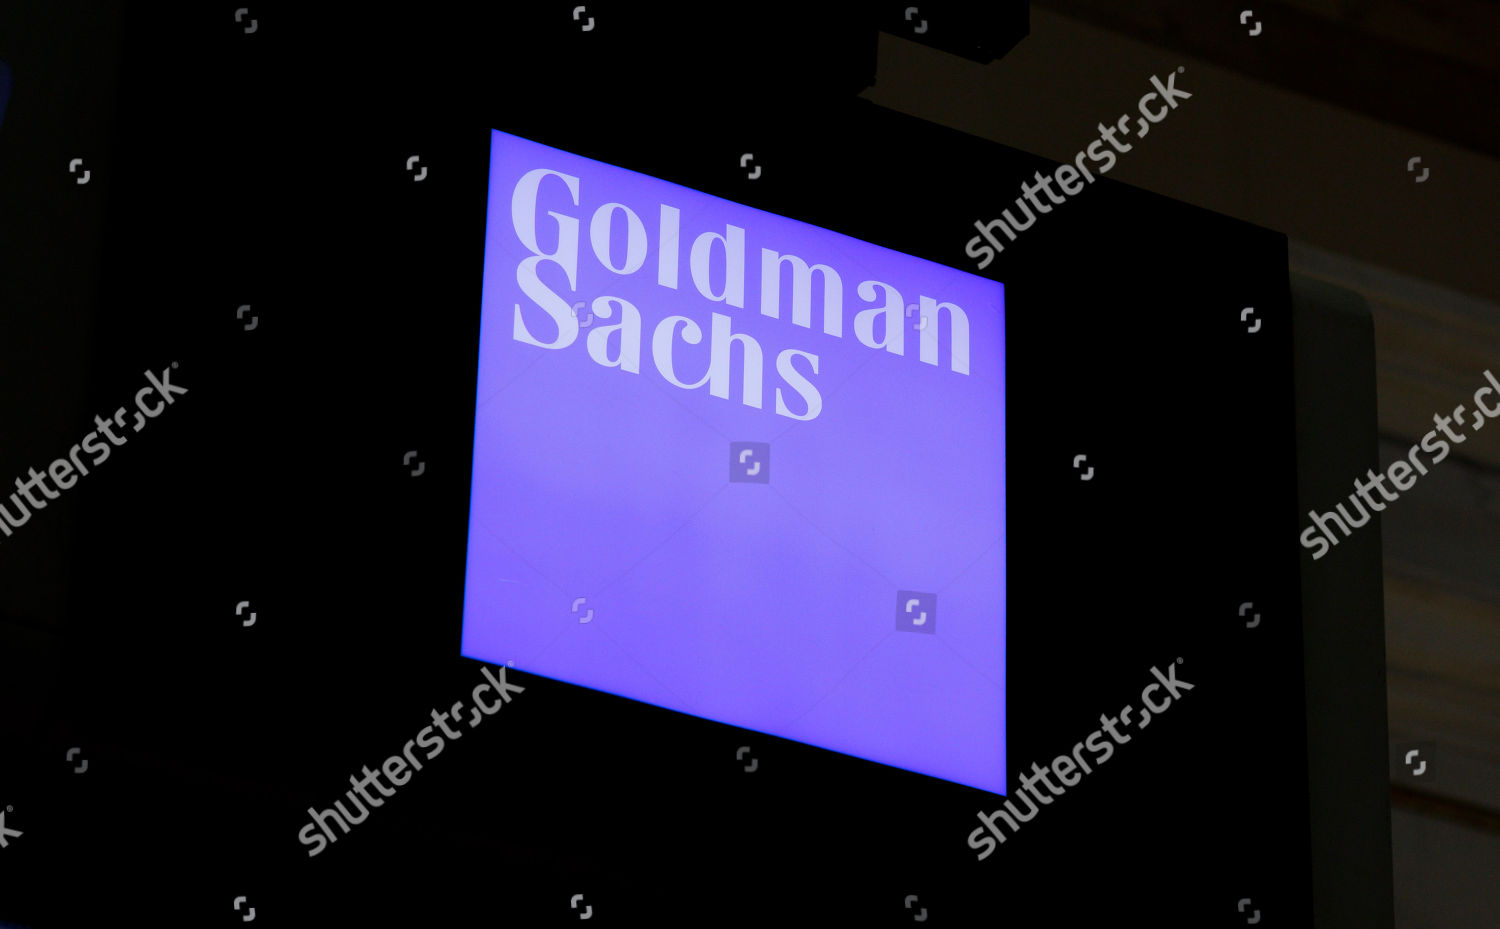 view sign Goldman Sachs New York Stock Editorial Stock Photo